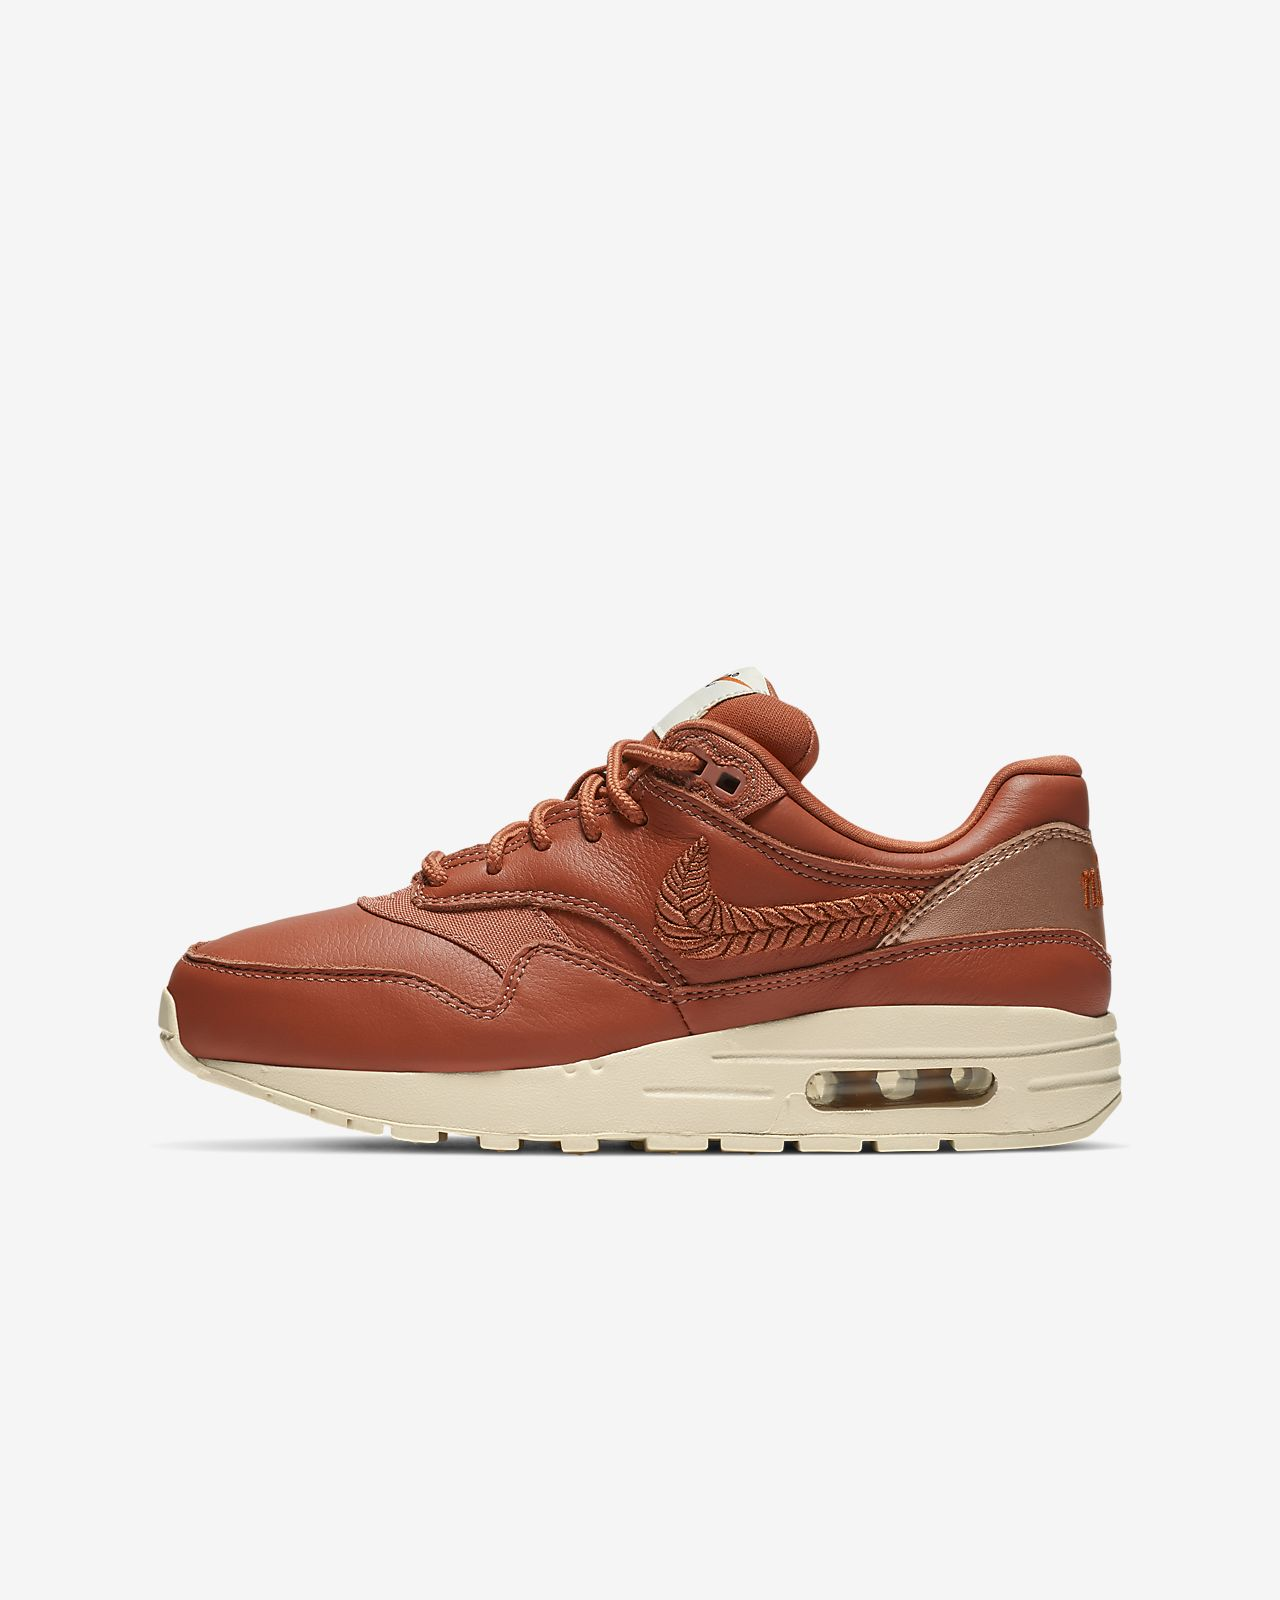 on sale 607a2 1e00d ... Nike Air Max 1 Premium Embroidered Big Kids  Shoe